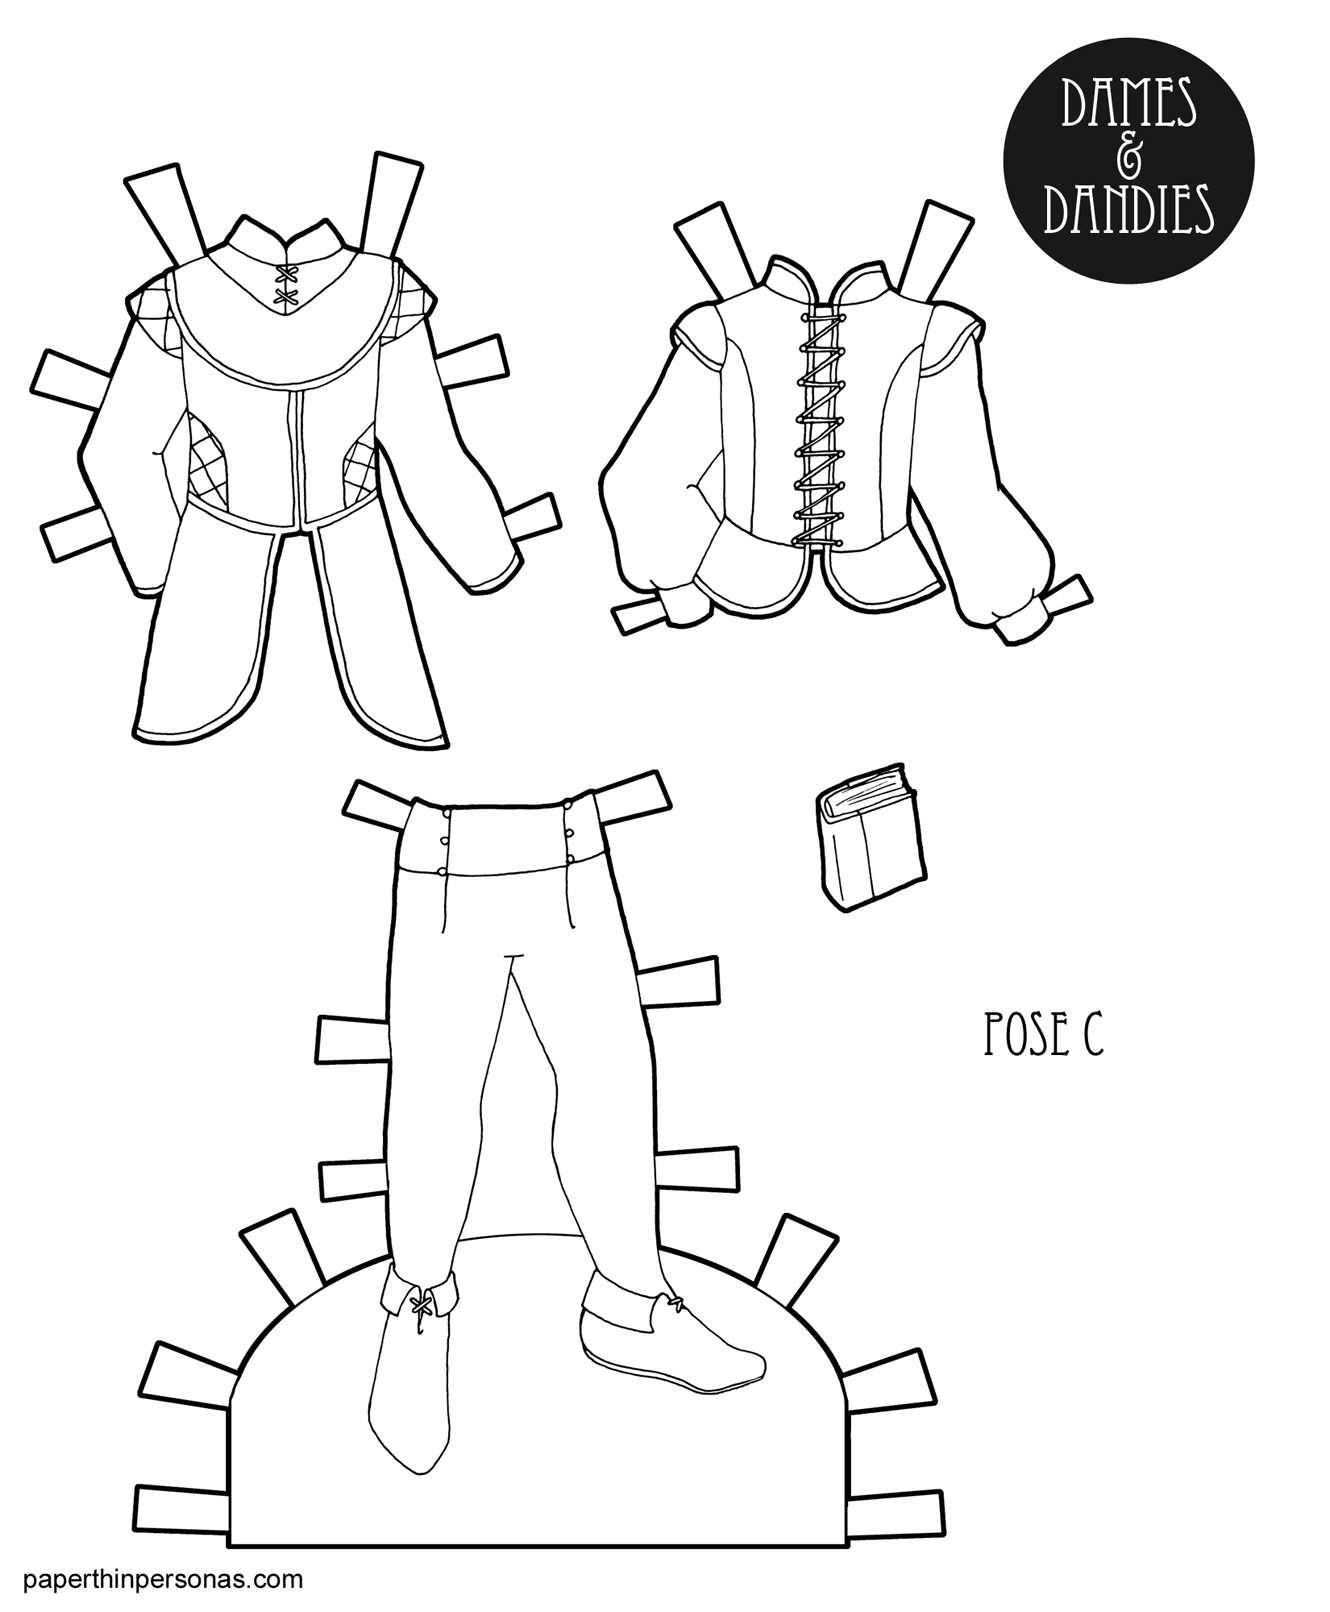 photo relating to Paper Doll Clothes Printable named A Coloring Web page Printable: Mens Myth Paper Doll Garments